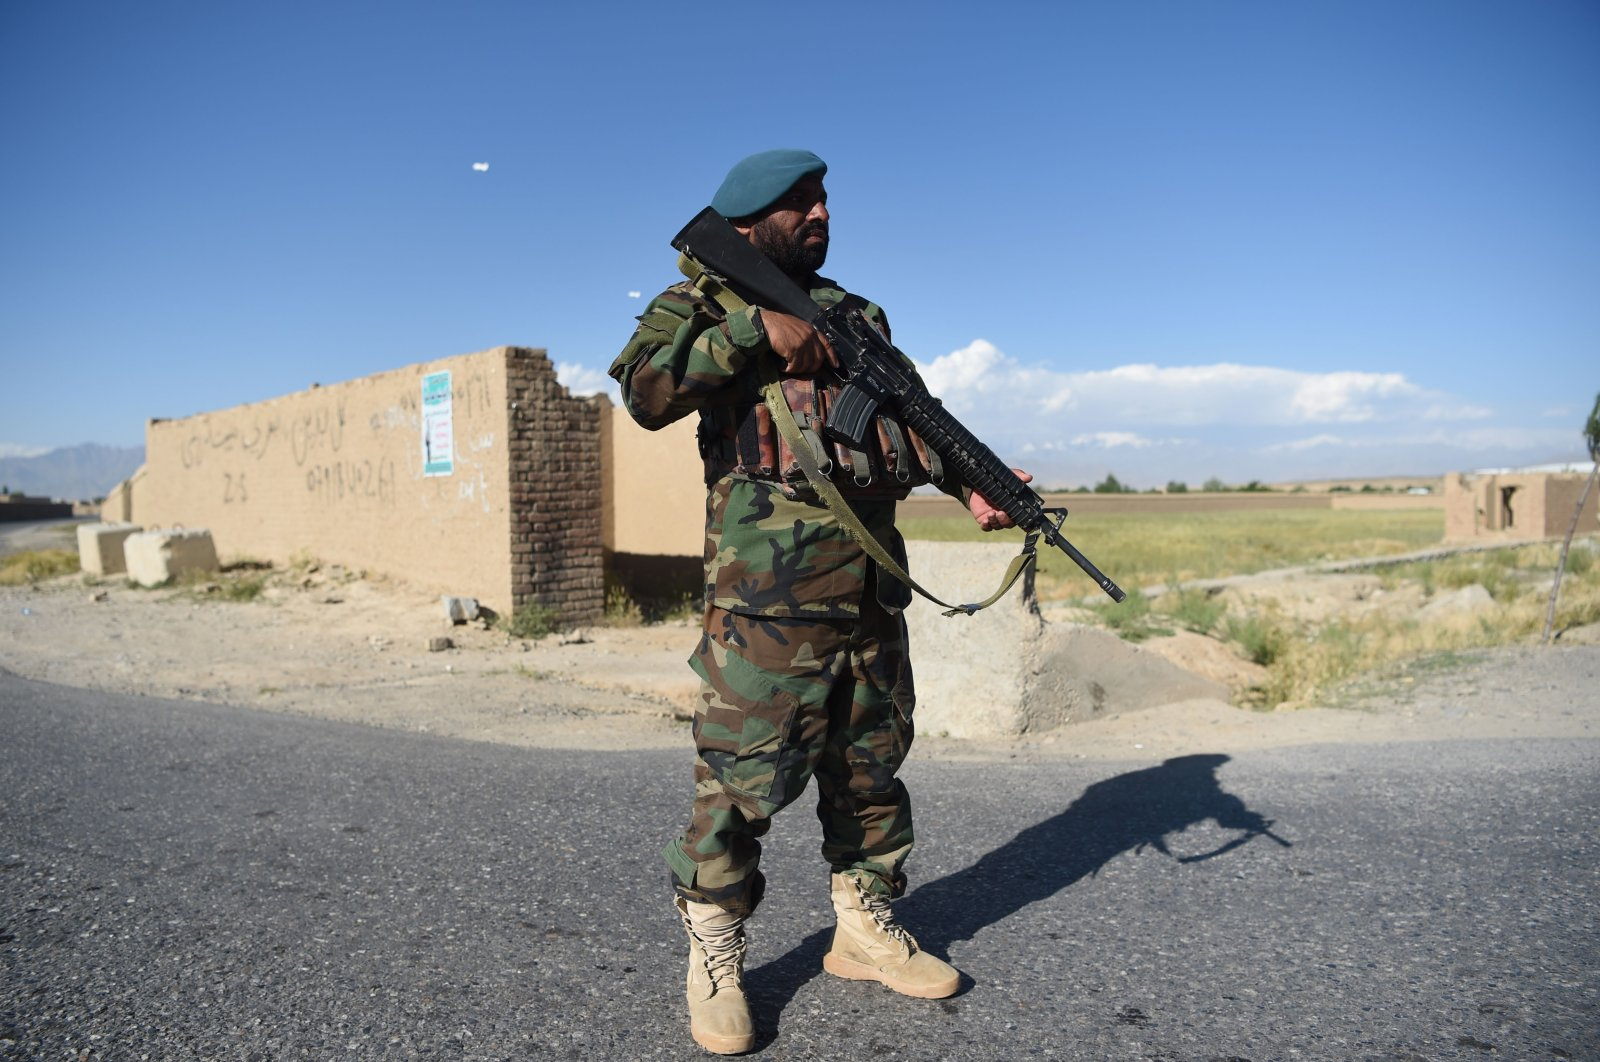 An Afghan National Army (ANA) soldier stands guard as Taliban prisoners are released from Bagram prison, at a checkpoint, Bagram district, Parwan province, Afghanistan, May 26, 2020. (AFP Photo)